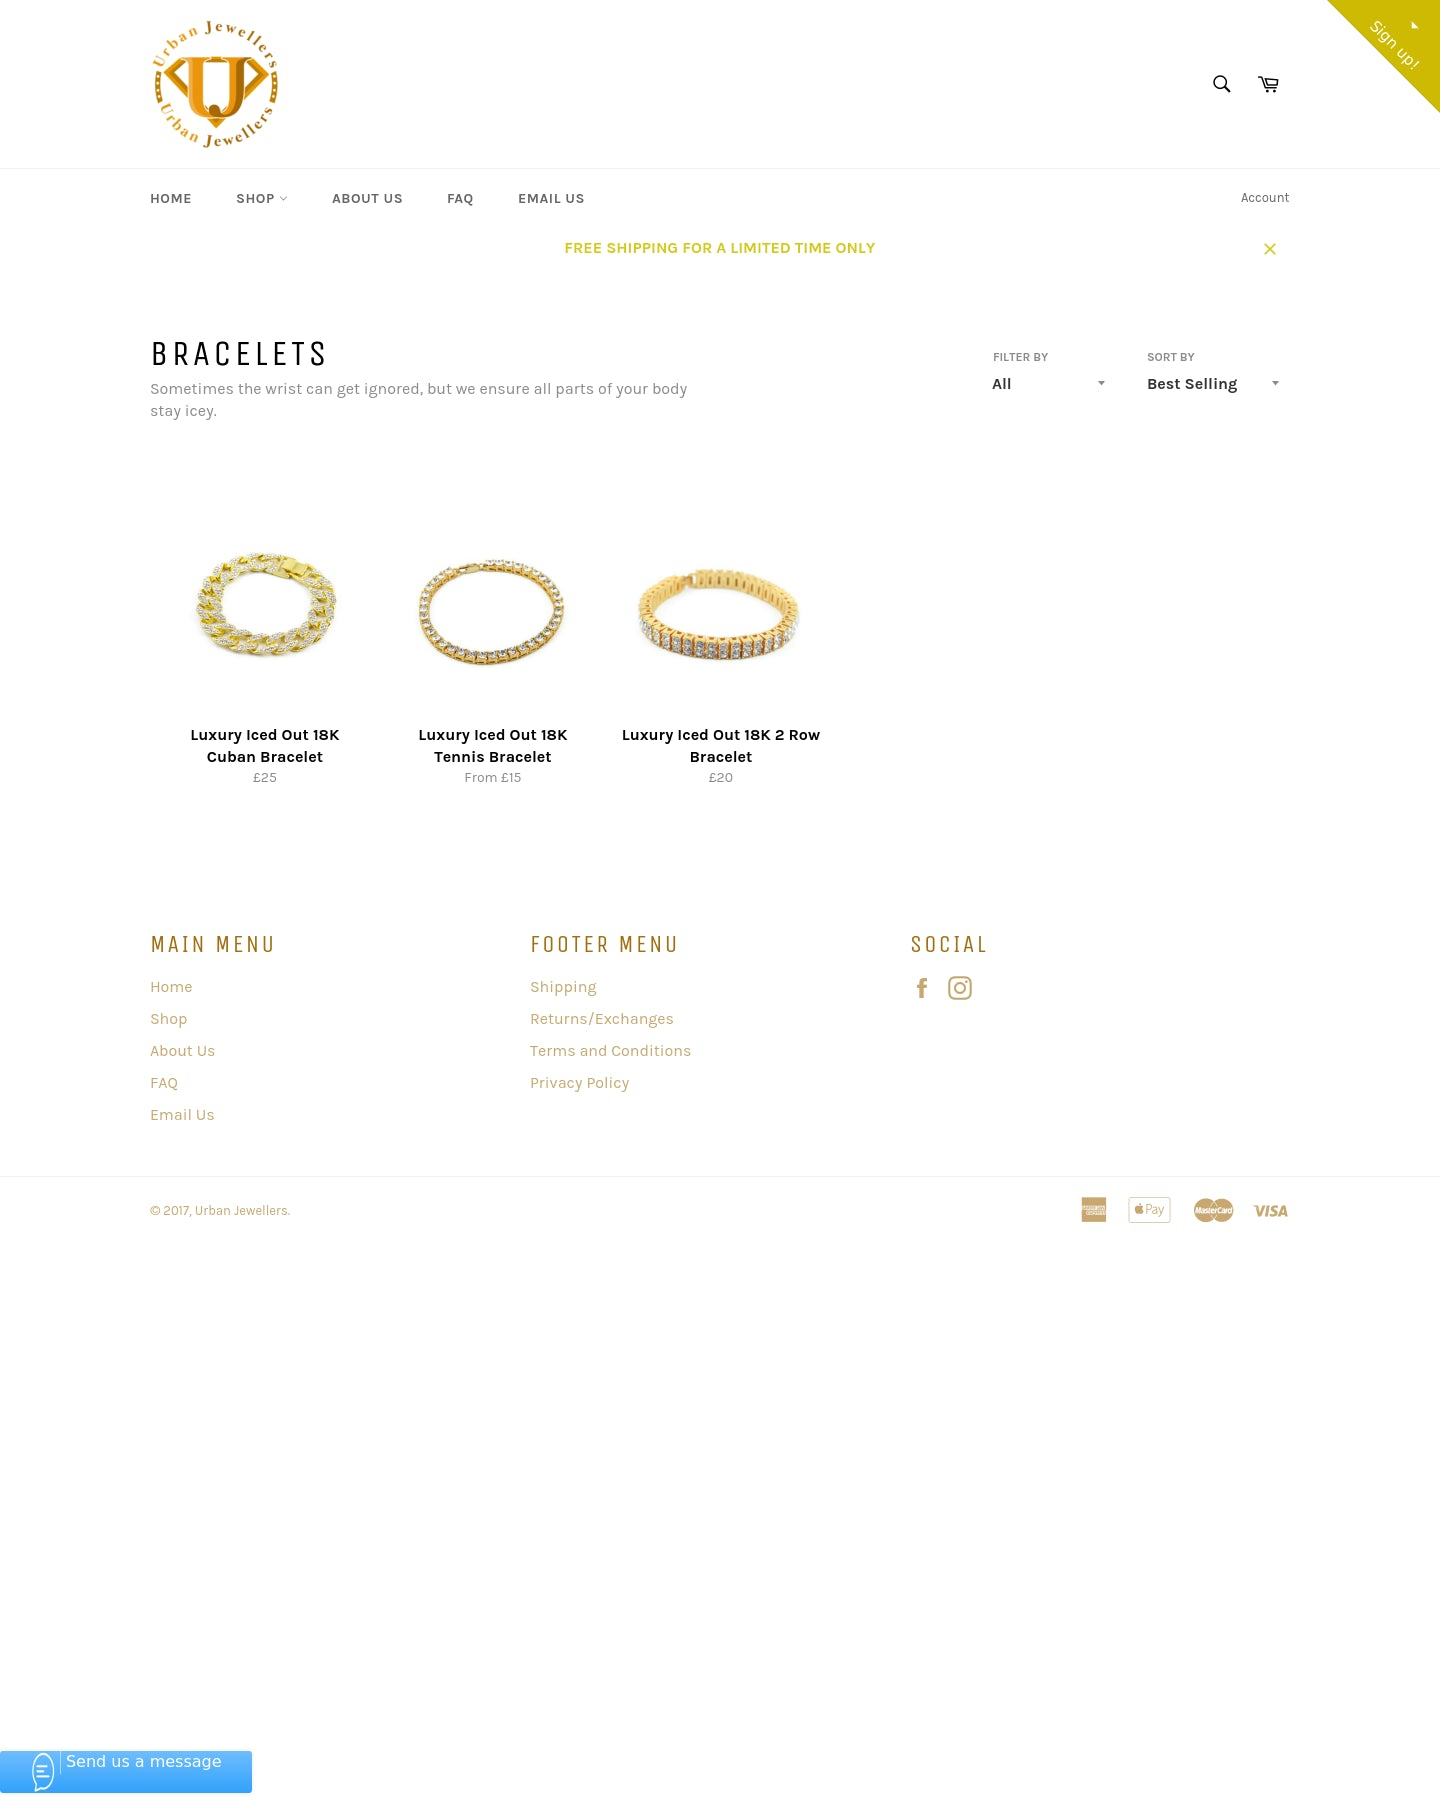 Urban Jewellers - Trendy modern jewellery store with HUGE potential Screenshot - 1